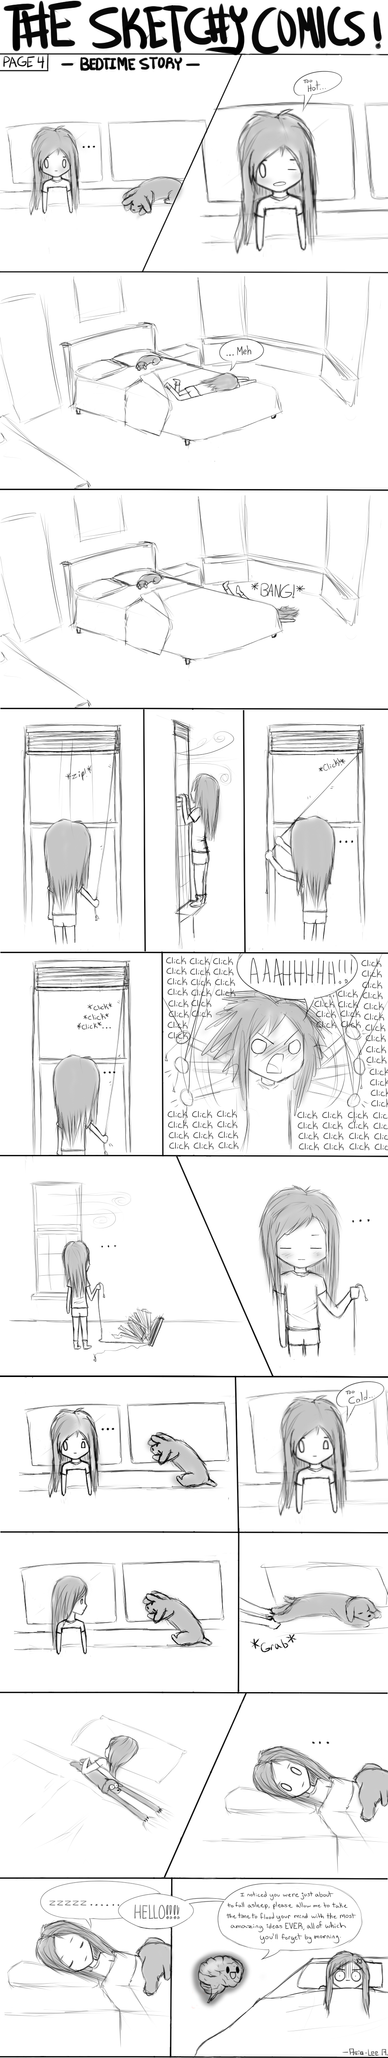 The Sketchy Commics #4 by Yourtoast